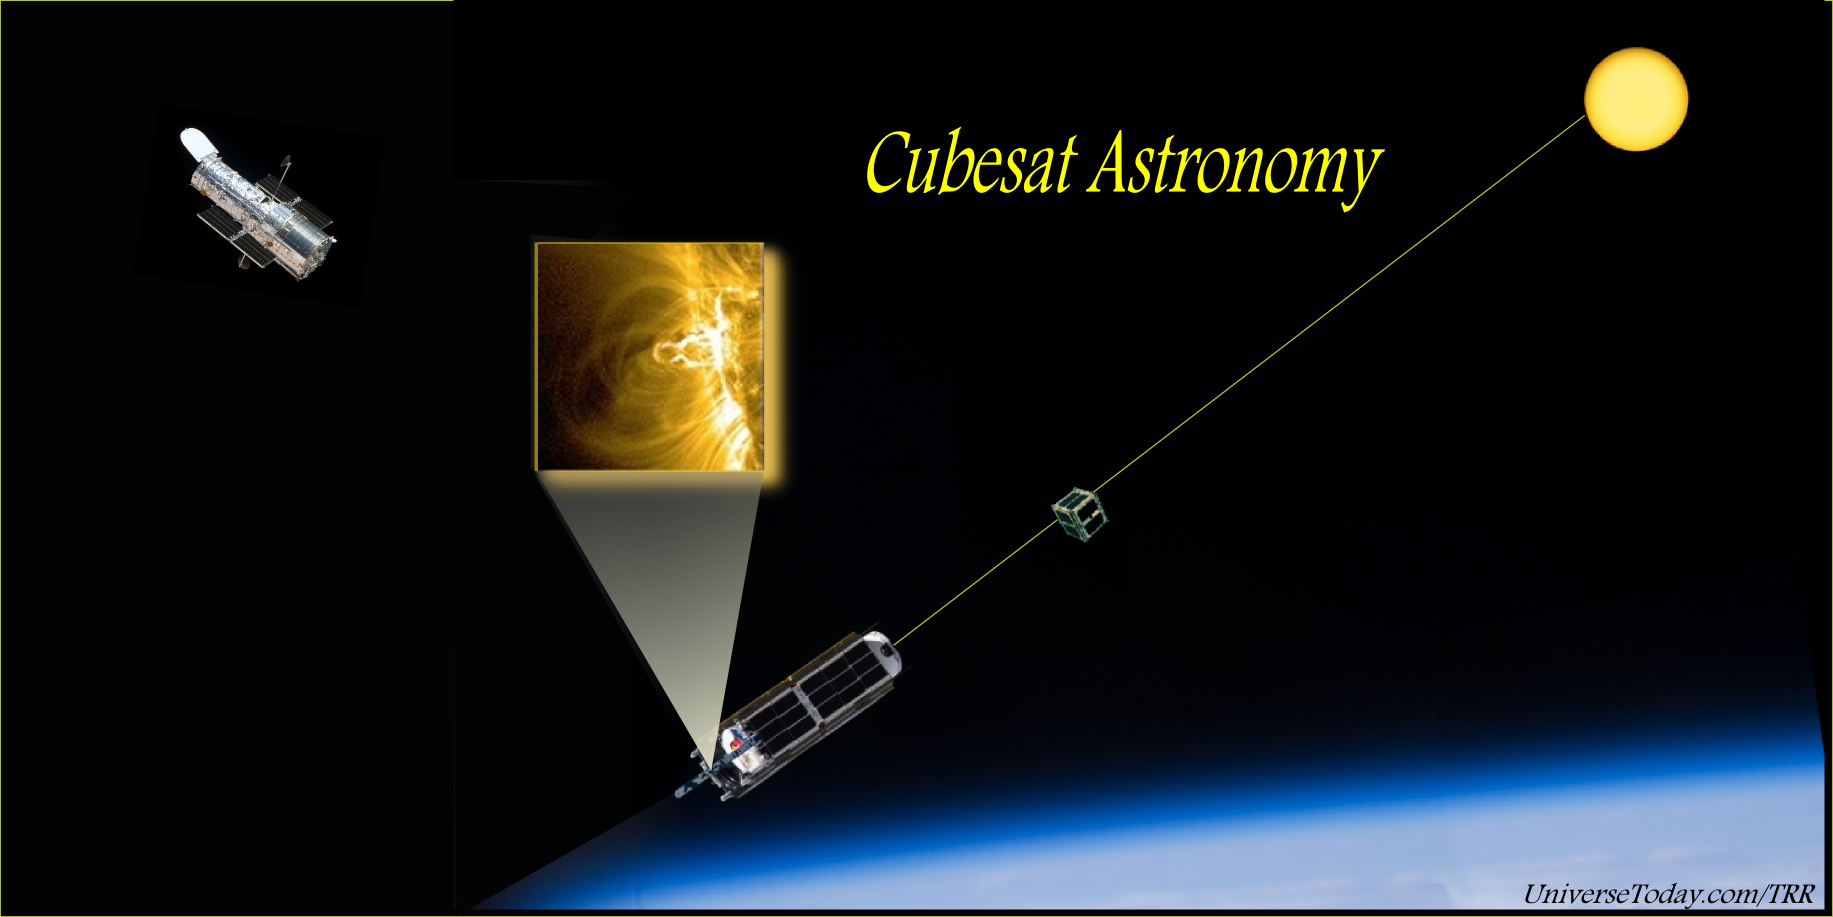 Will cubesats develop a new technological branch of astronomy? Goddard engineers are taking the necessary steps to make cubesat sized telescopes a reality. – Image Credit: NASA, UniverseToday/TRR